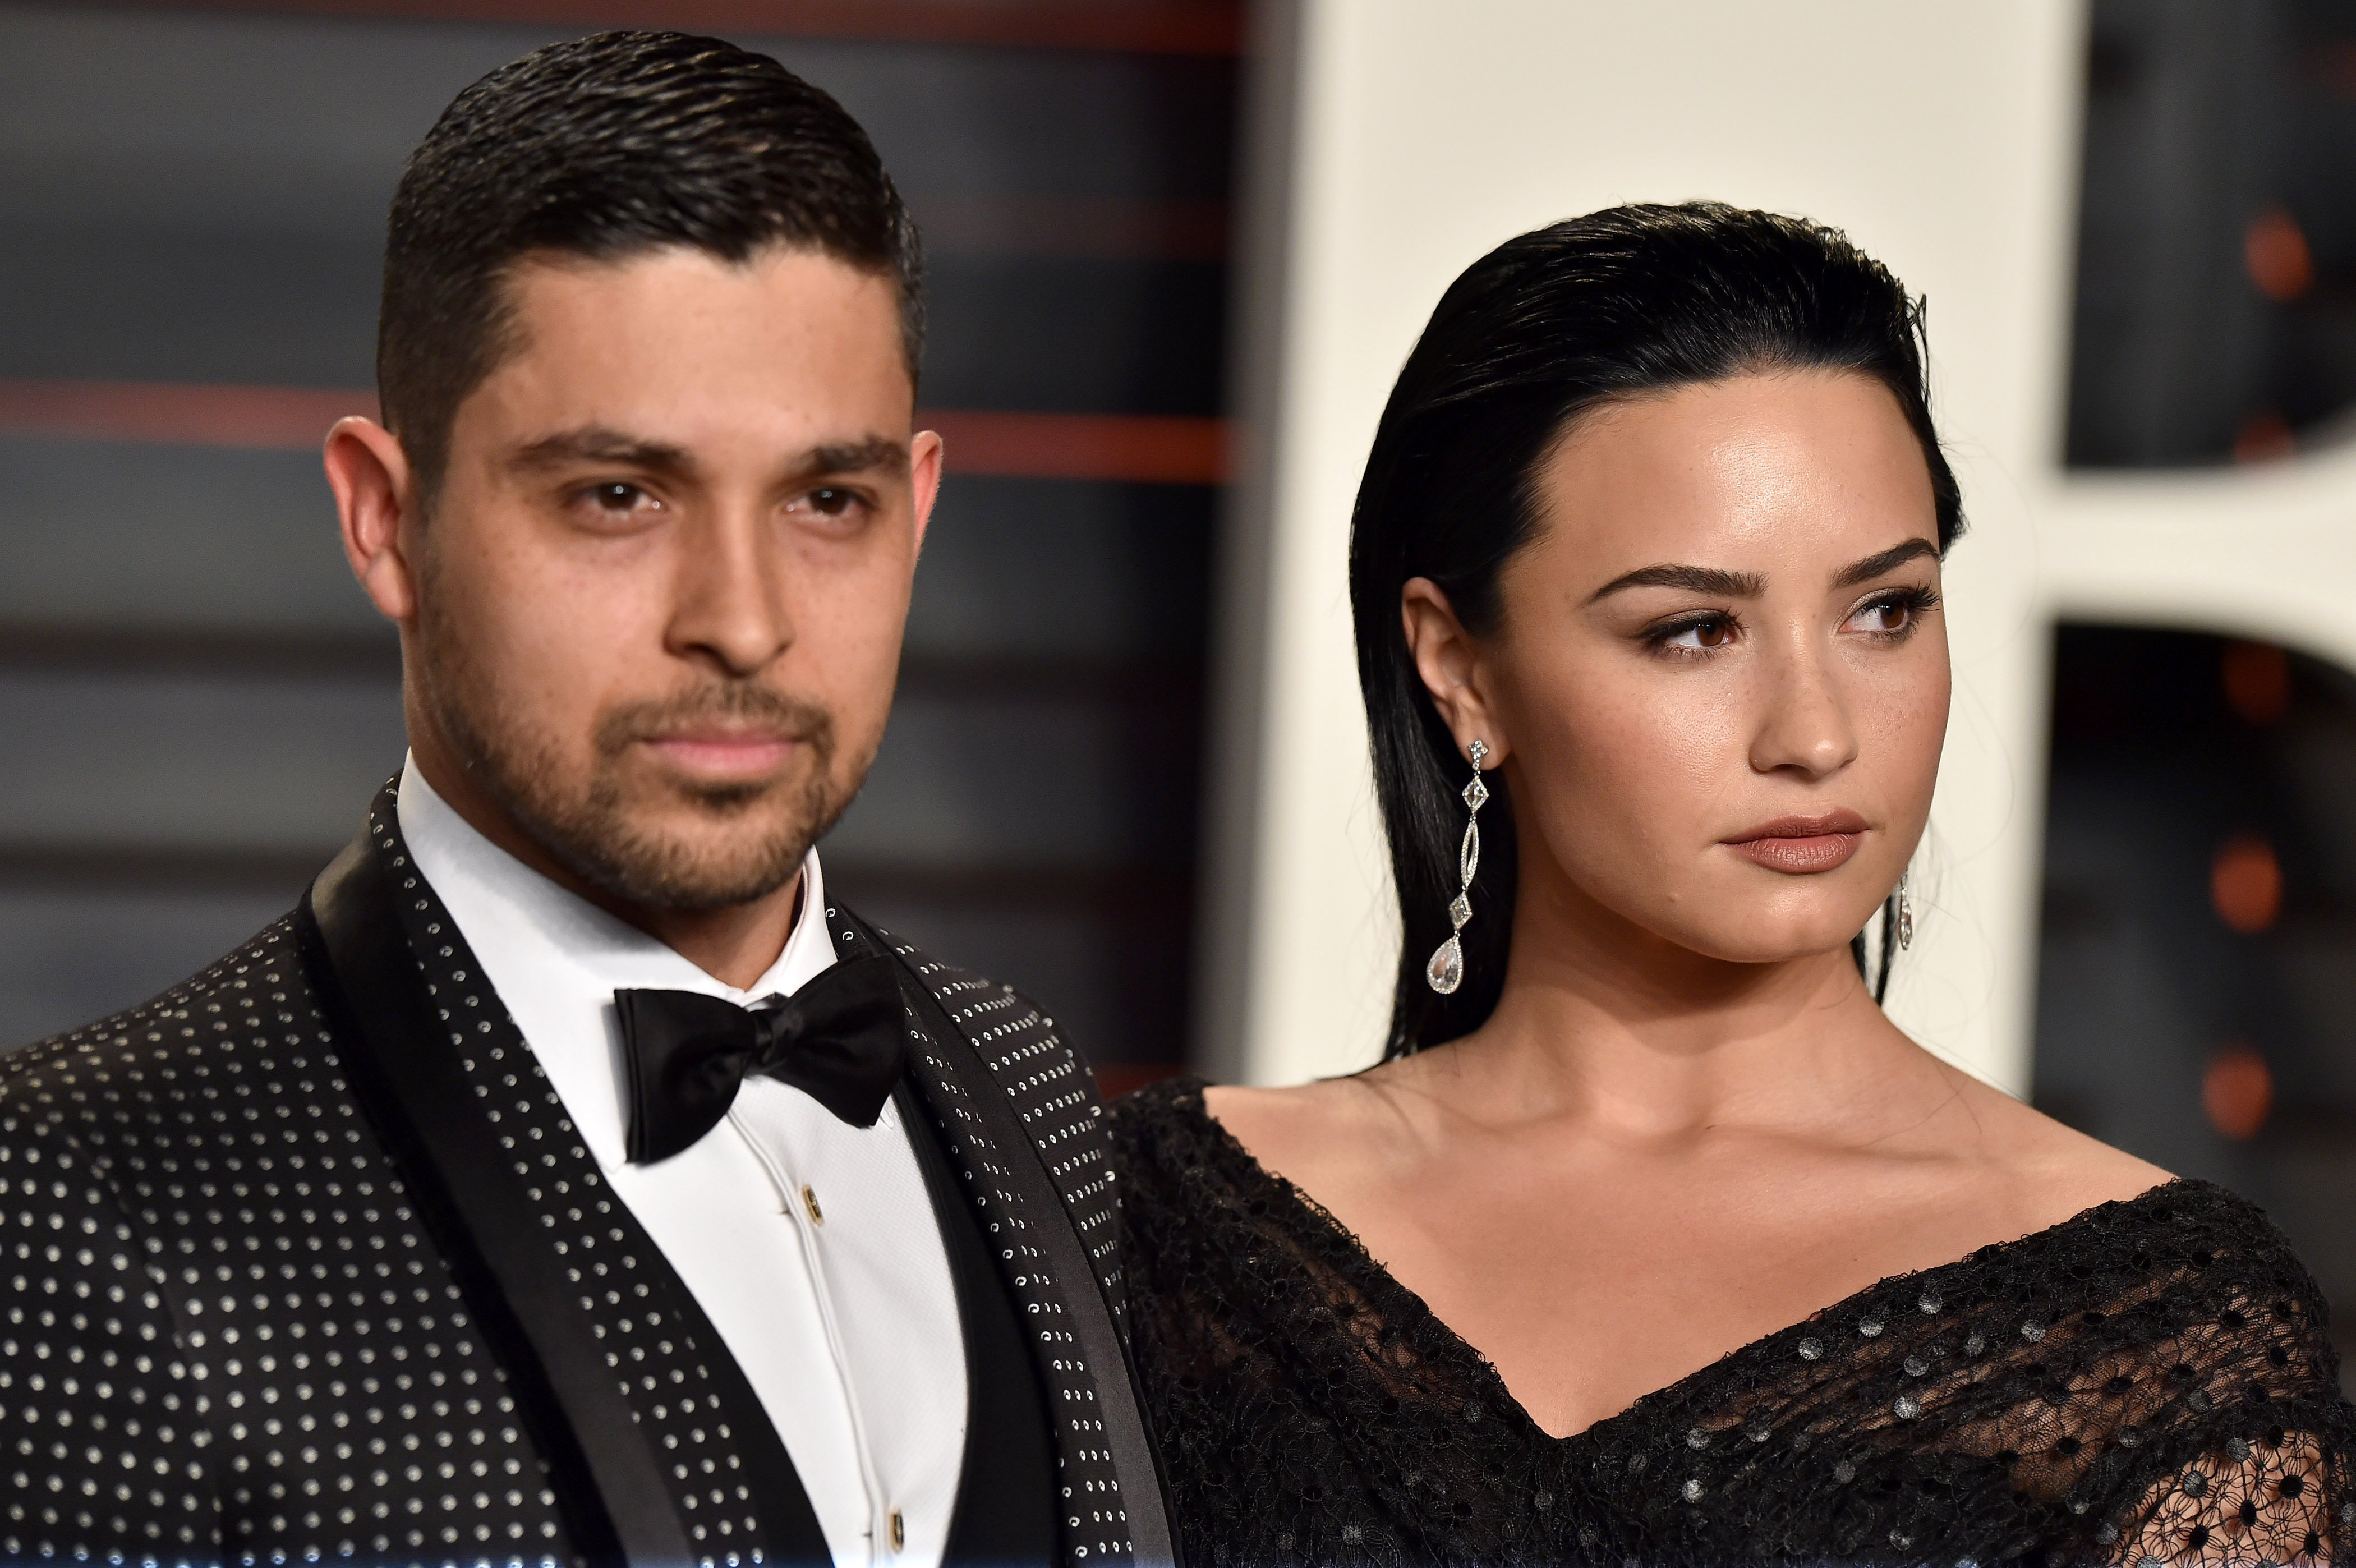 Wilmer Valderrama and Demi Lovato on February 28, 2016 in Beverly Hills, California | Photo: Getty Images